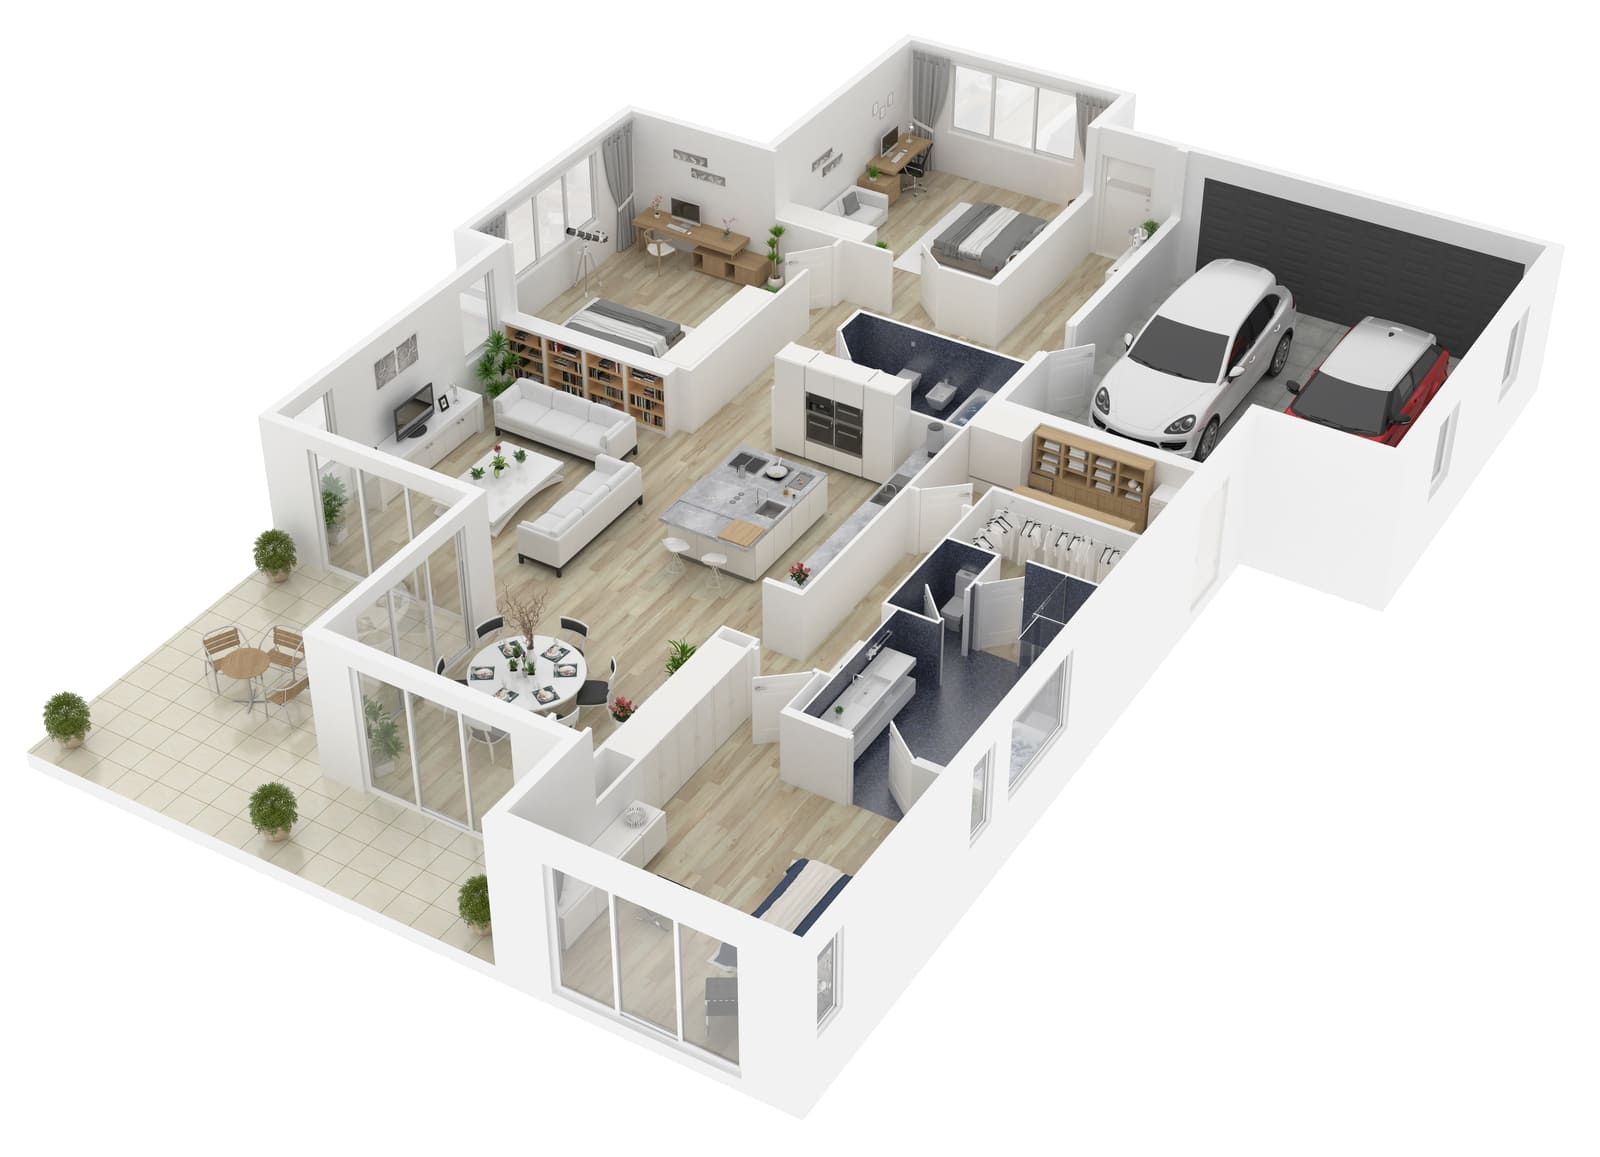 Where are 3D Floor Plans used